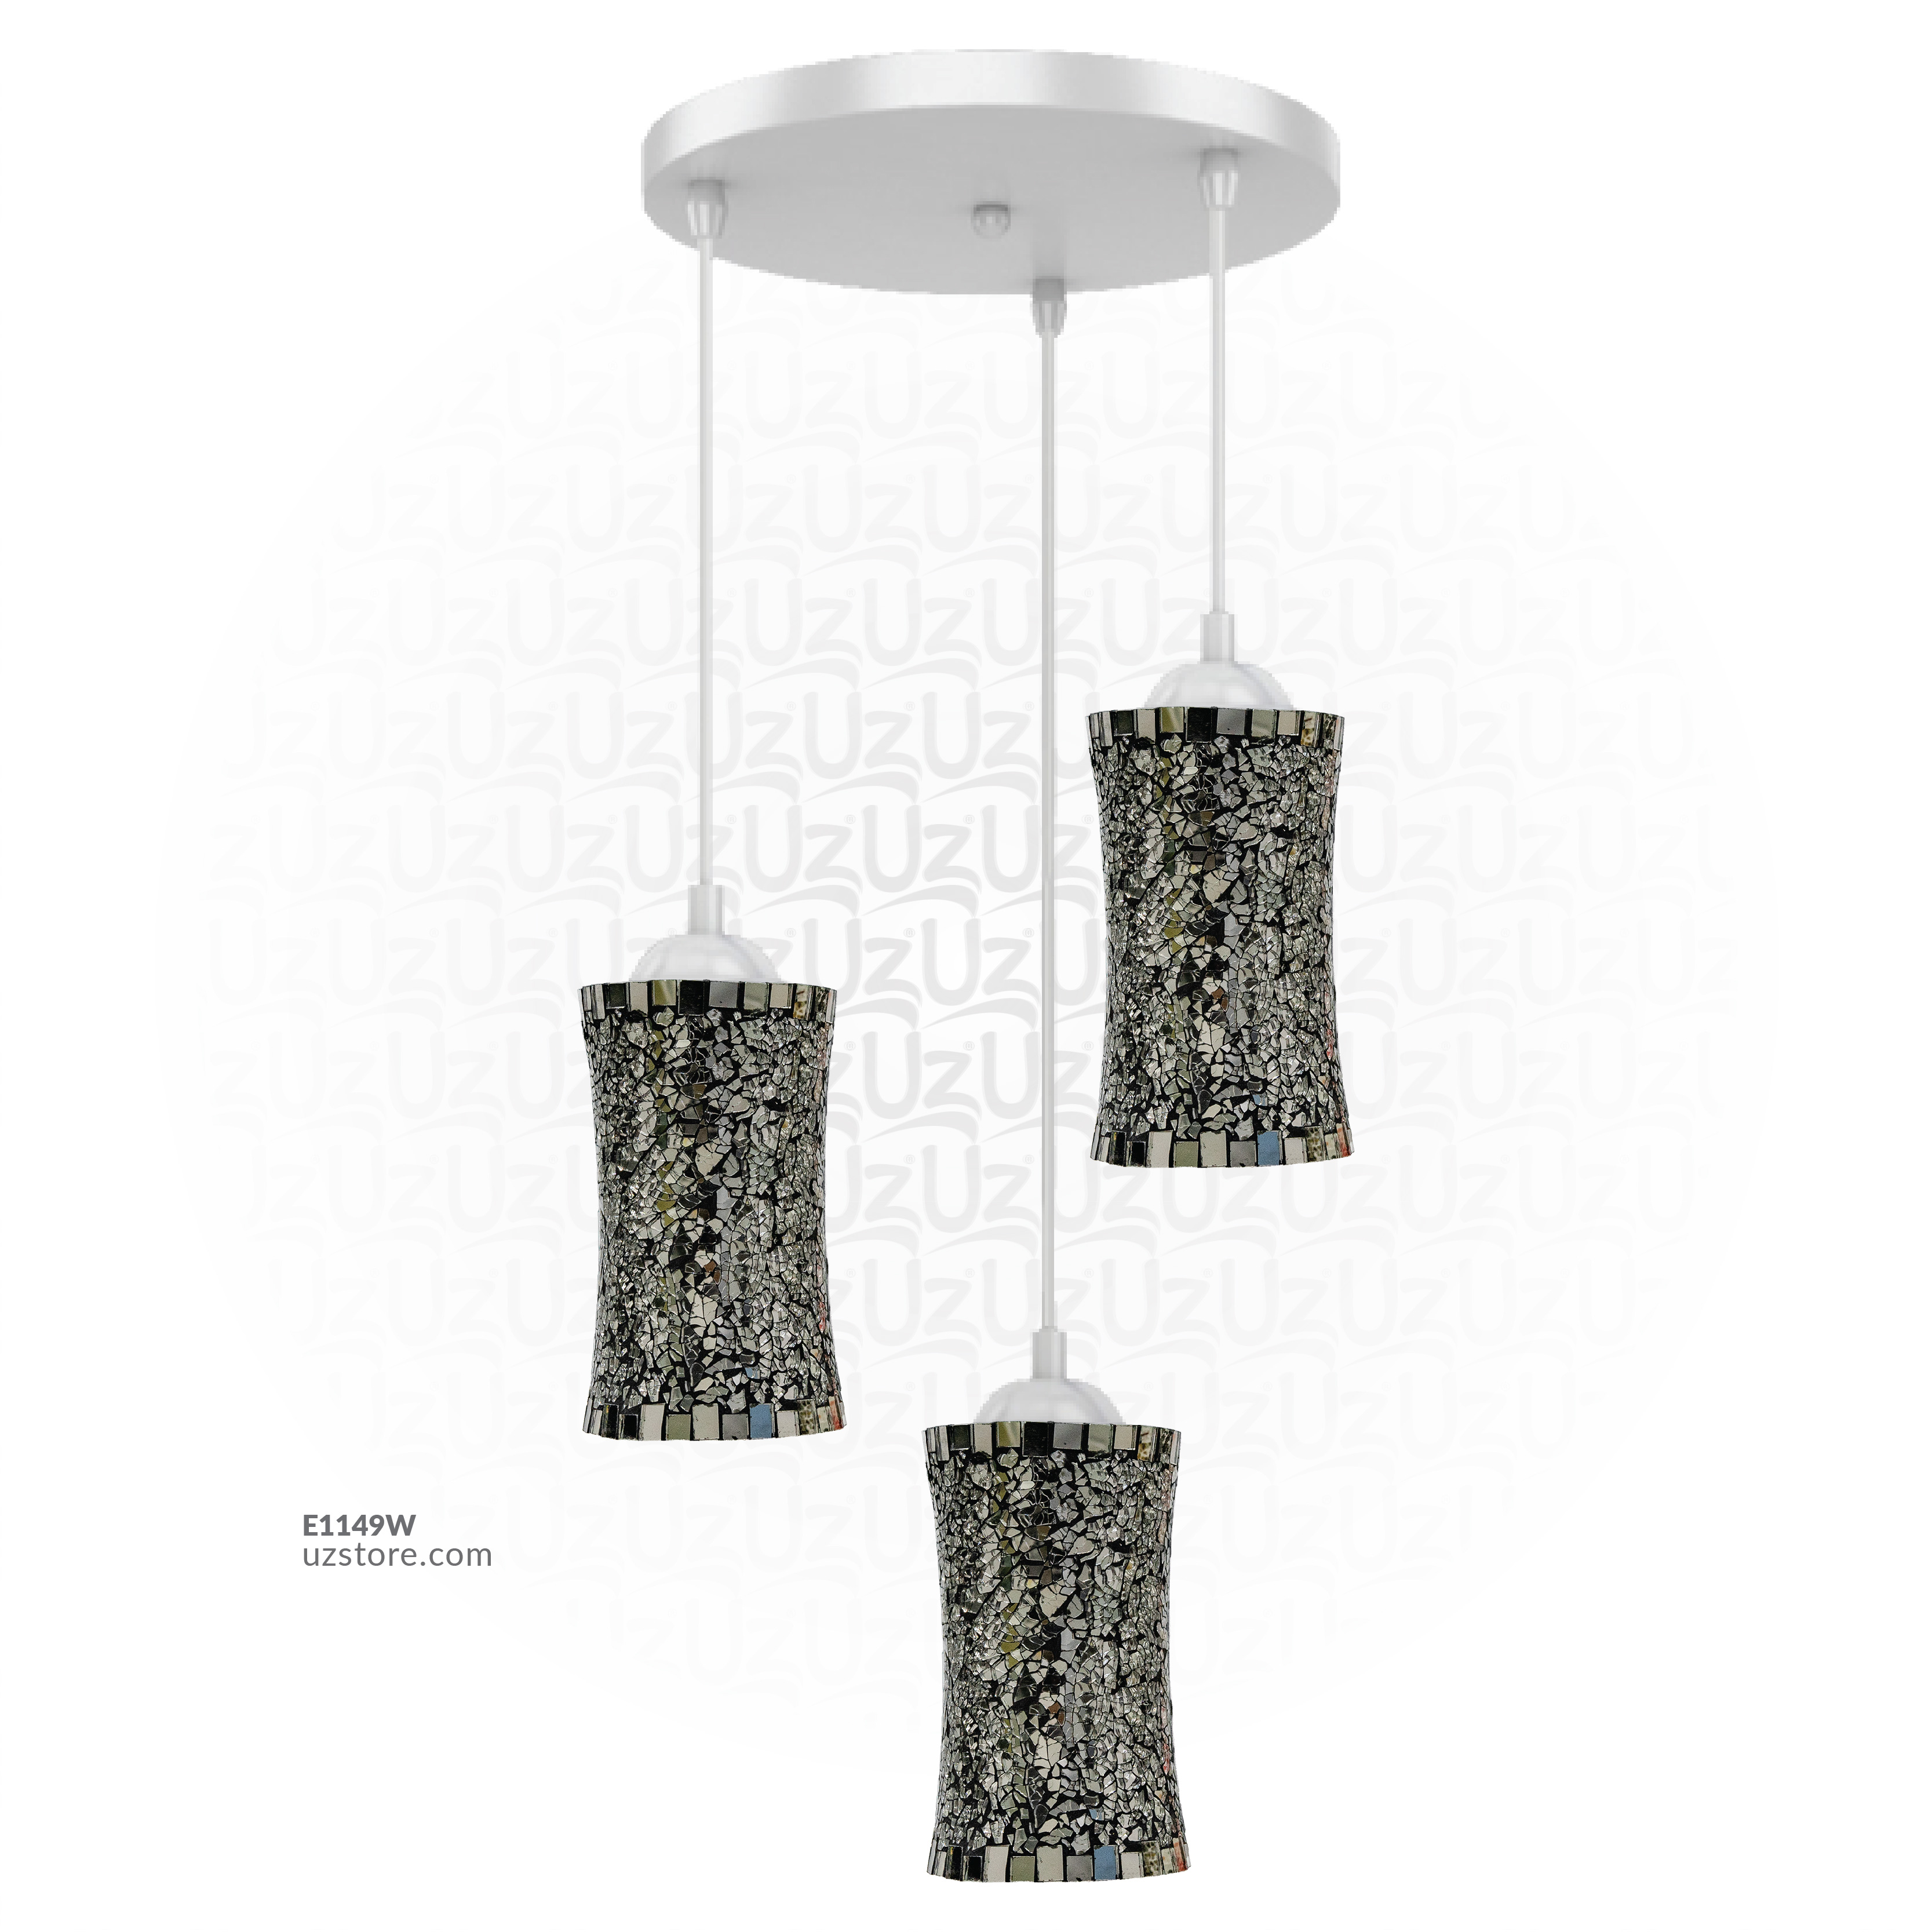 Celling Mosaic Glass light 3way